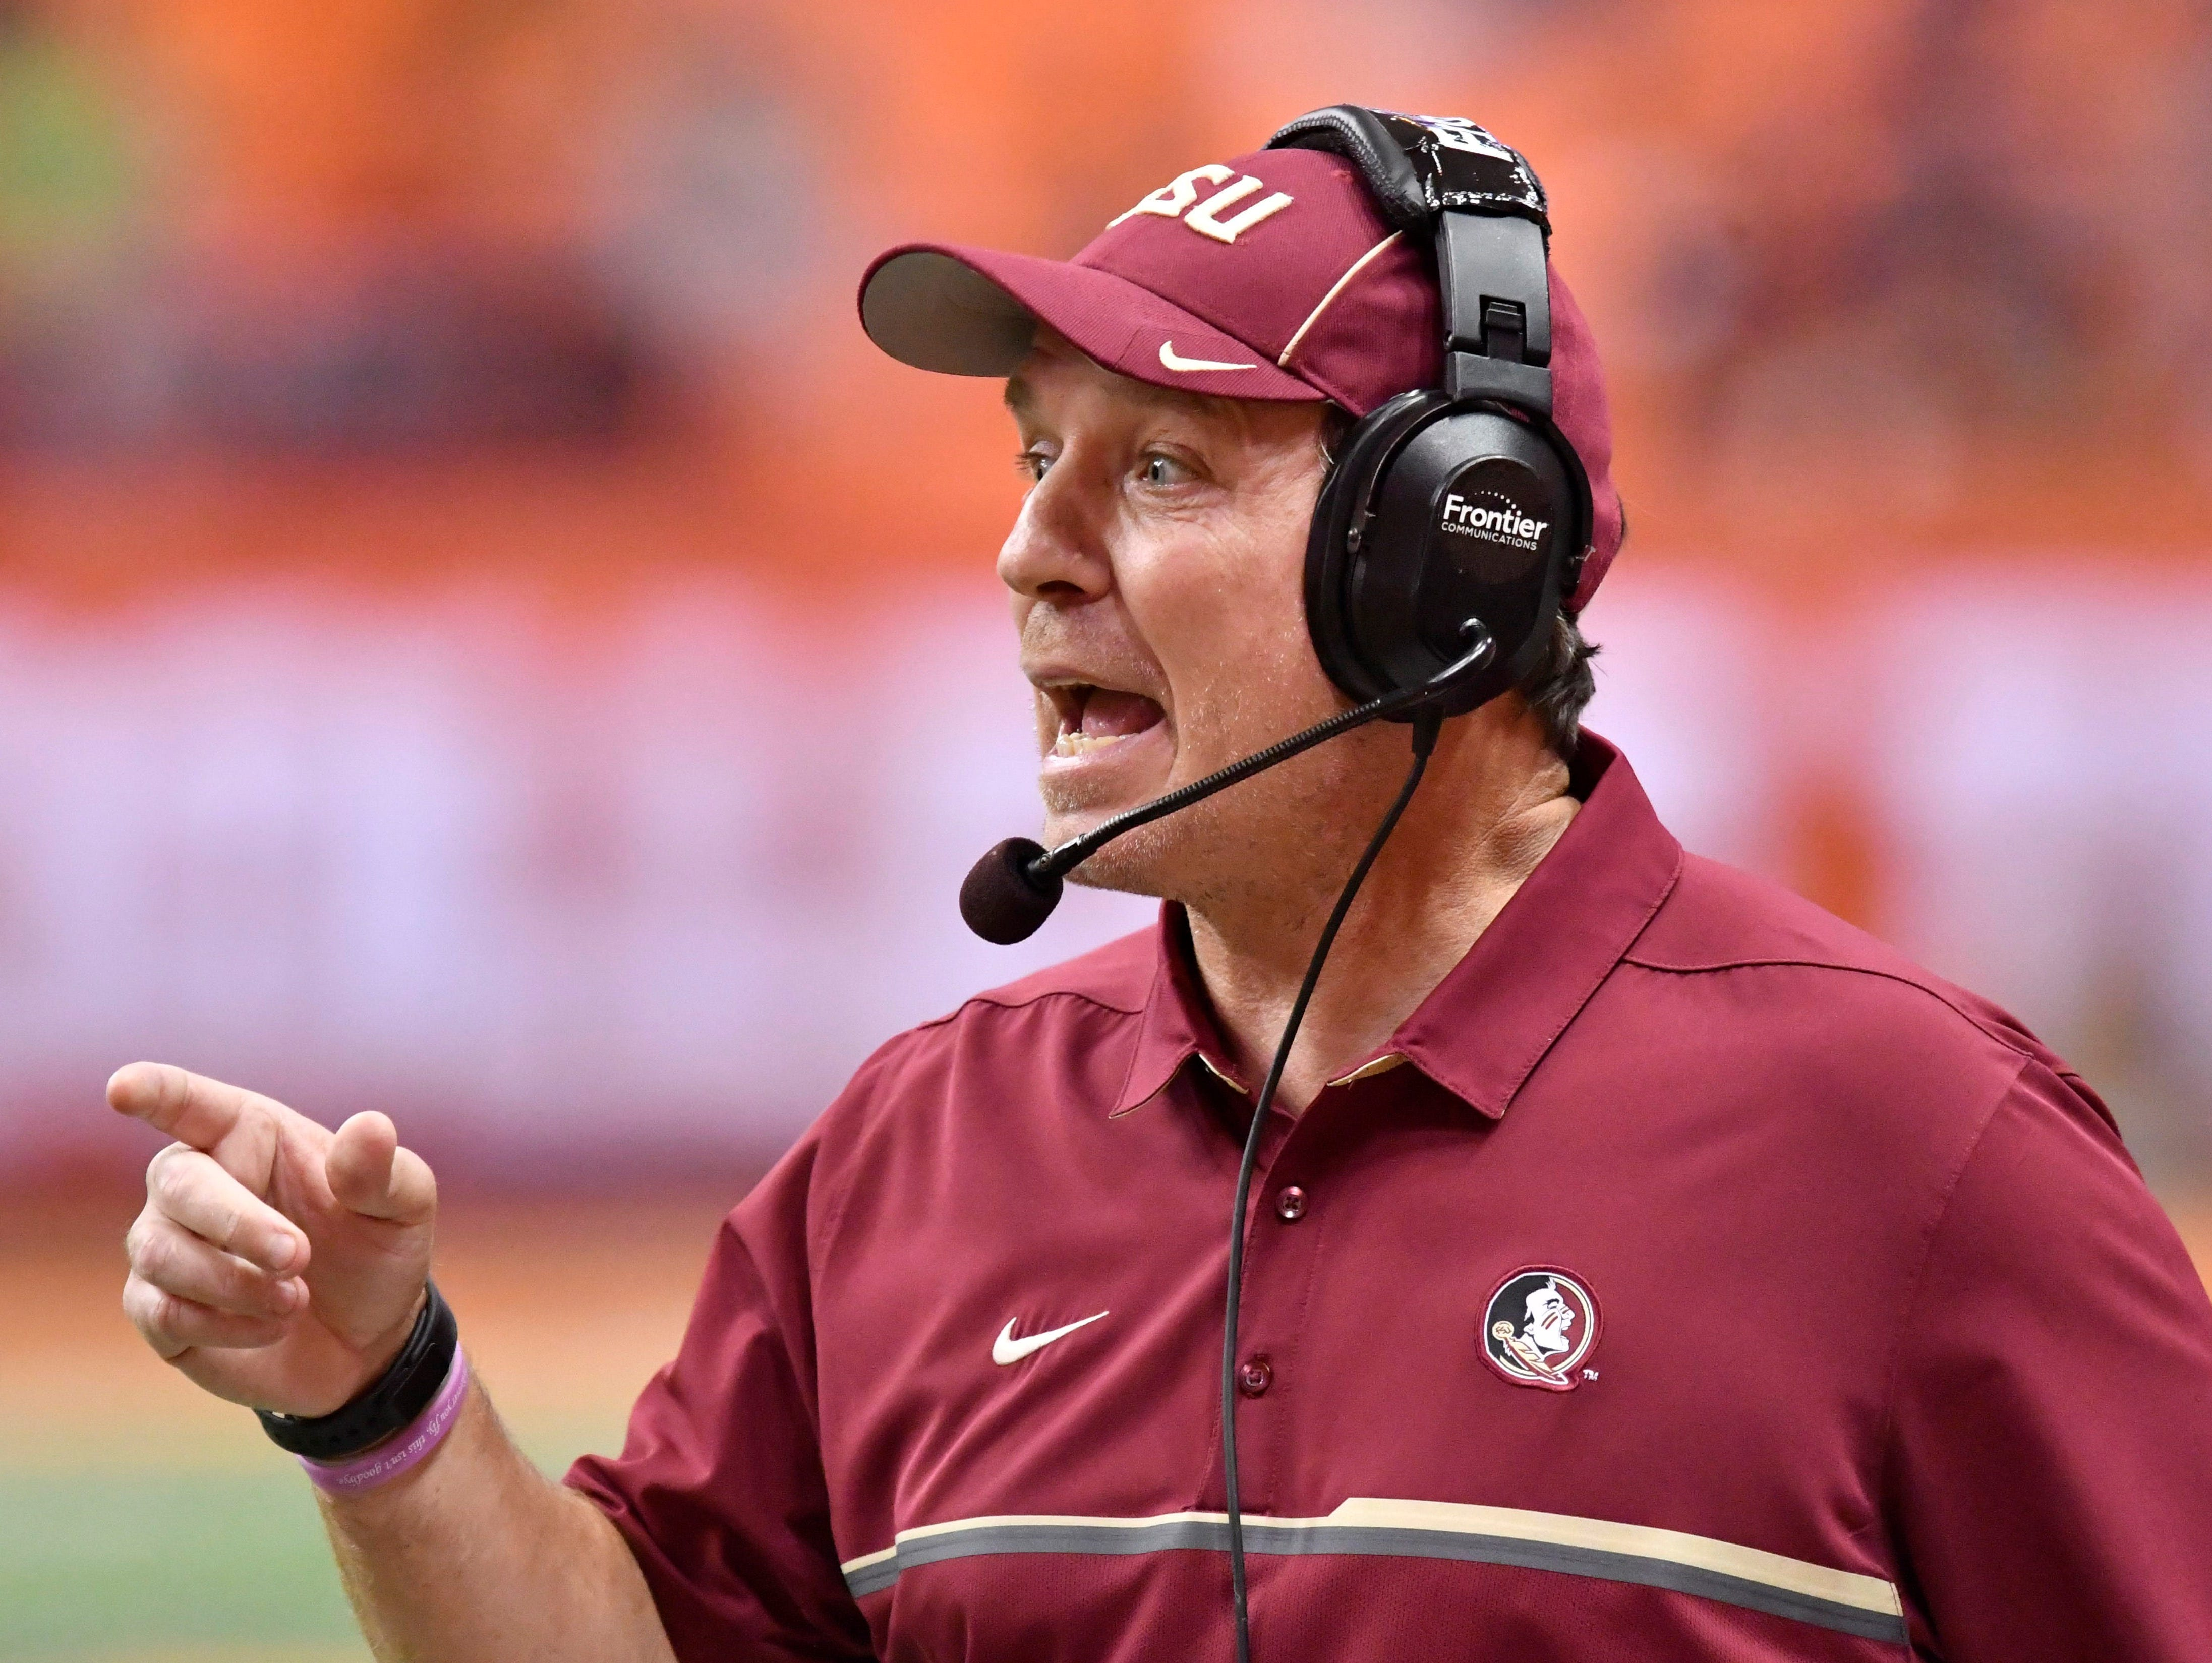 Nov 19, 2016; Syracuse, NY, USA; Florida State Seminoles head coach Jimbo Fisher has a word with an official to dispute a call during the fourth quarter of a game against the Syracuse Orange at the Carrier Dome. Florida State won 45-14. Mandatory Credit: Mark Konezny-USA TODAY Sports